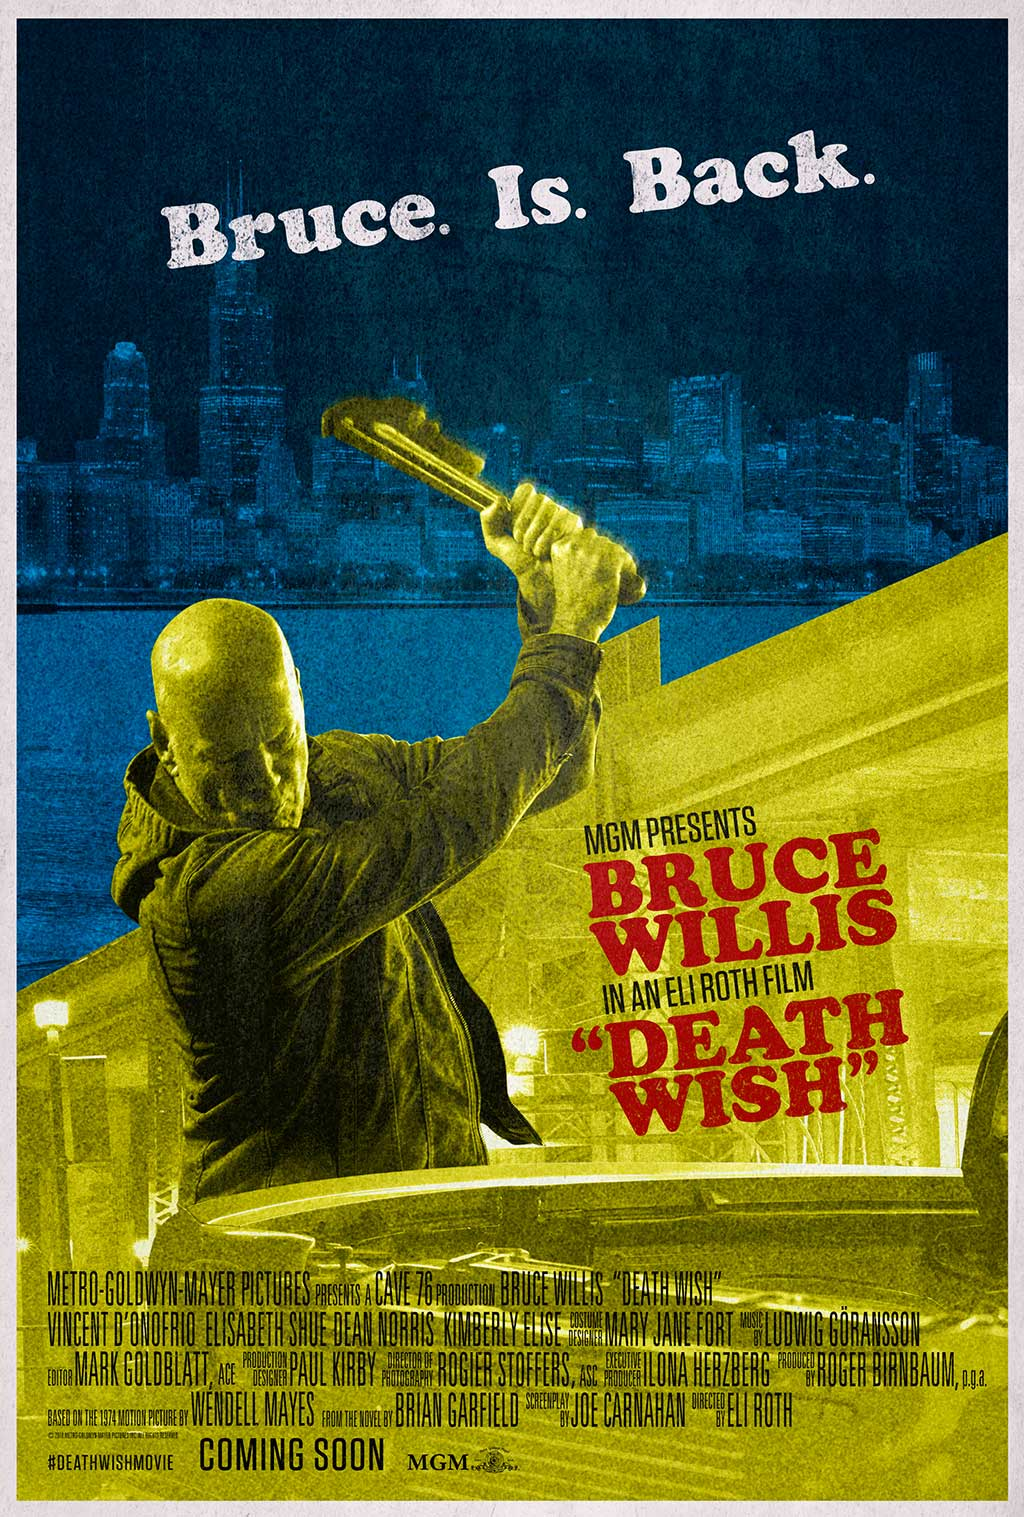 Death Wish Bruce WIllis Poster - OC Movie Reviews - Movie Reviews, Movie News, Documentary Reviews, Short Films, Short Film Reviews, Trailers, Movie Trailers, Interviews, film reviews, film news, hollywood, indie films, documentaries